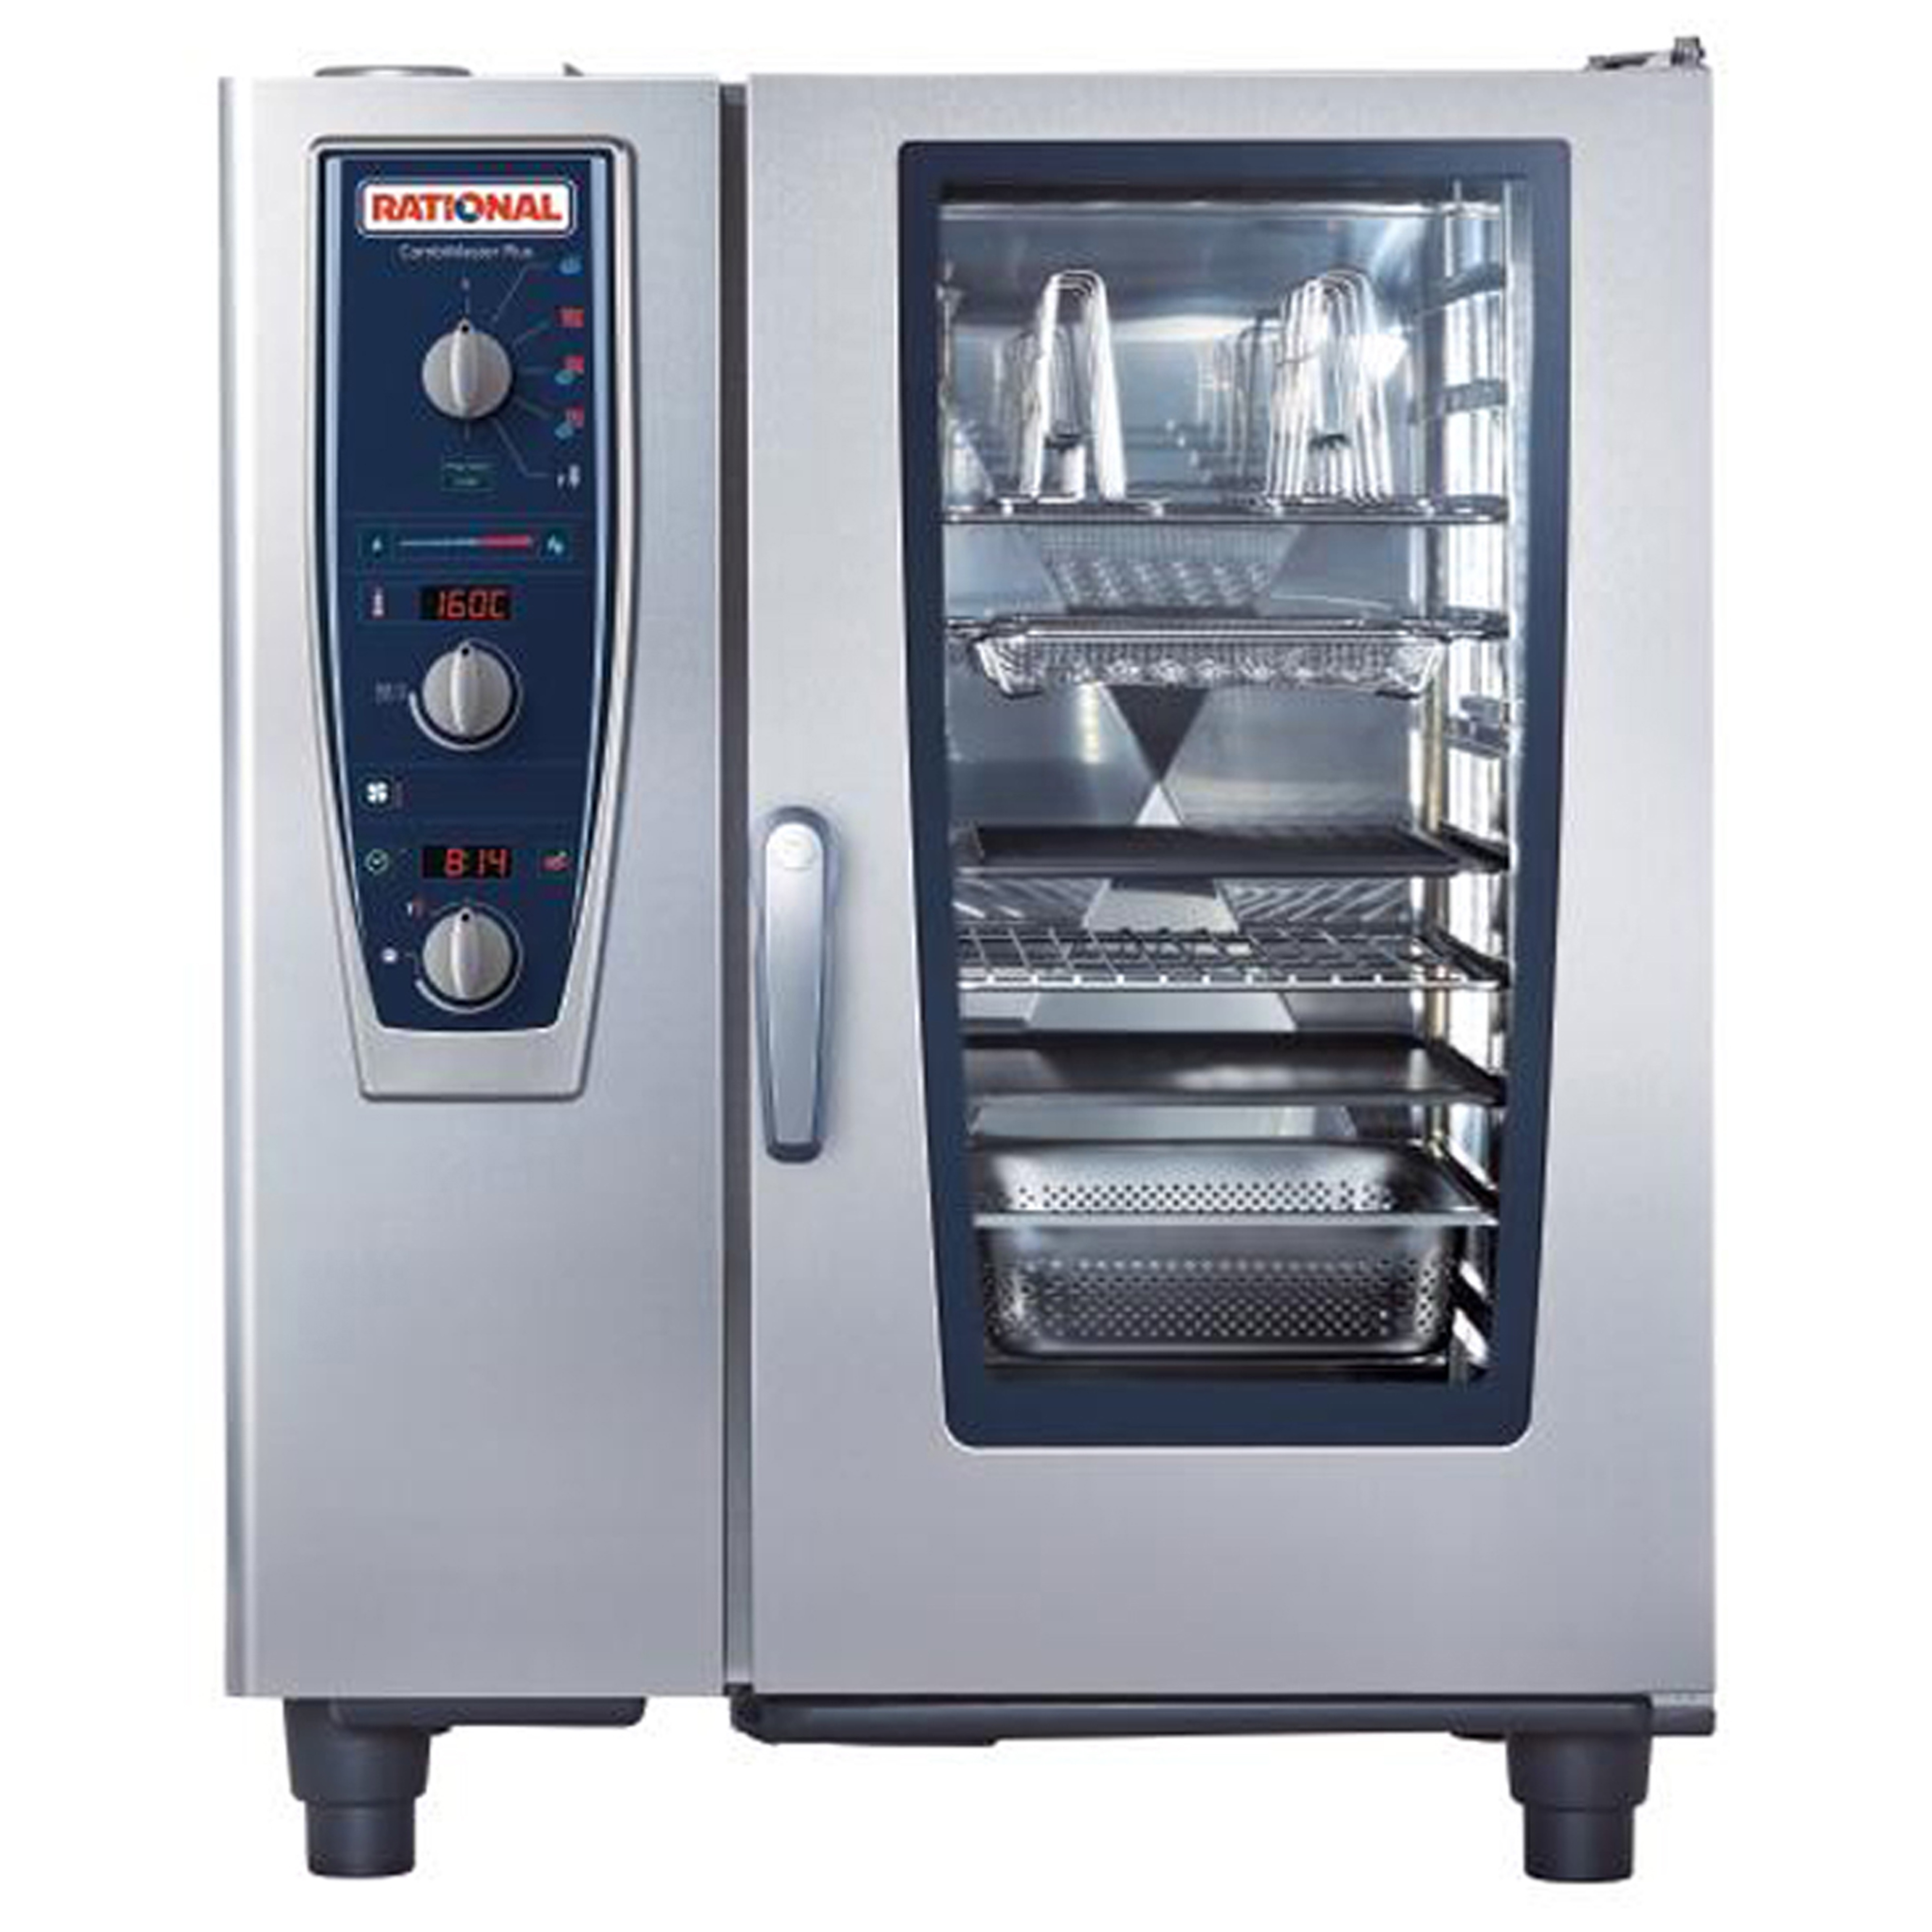 RATIONAL B119106.43.202 combi oven, electric